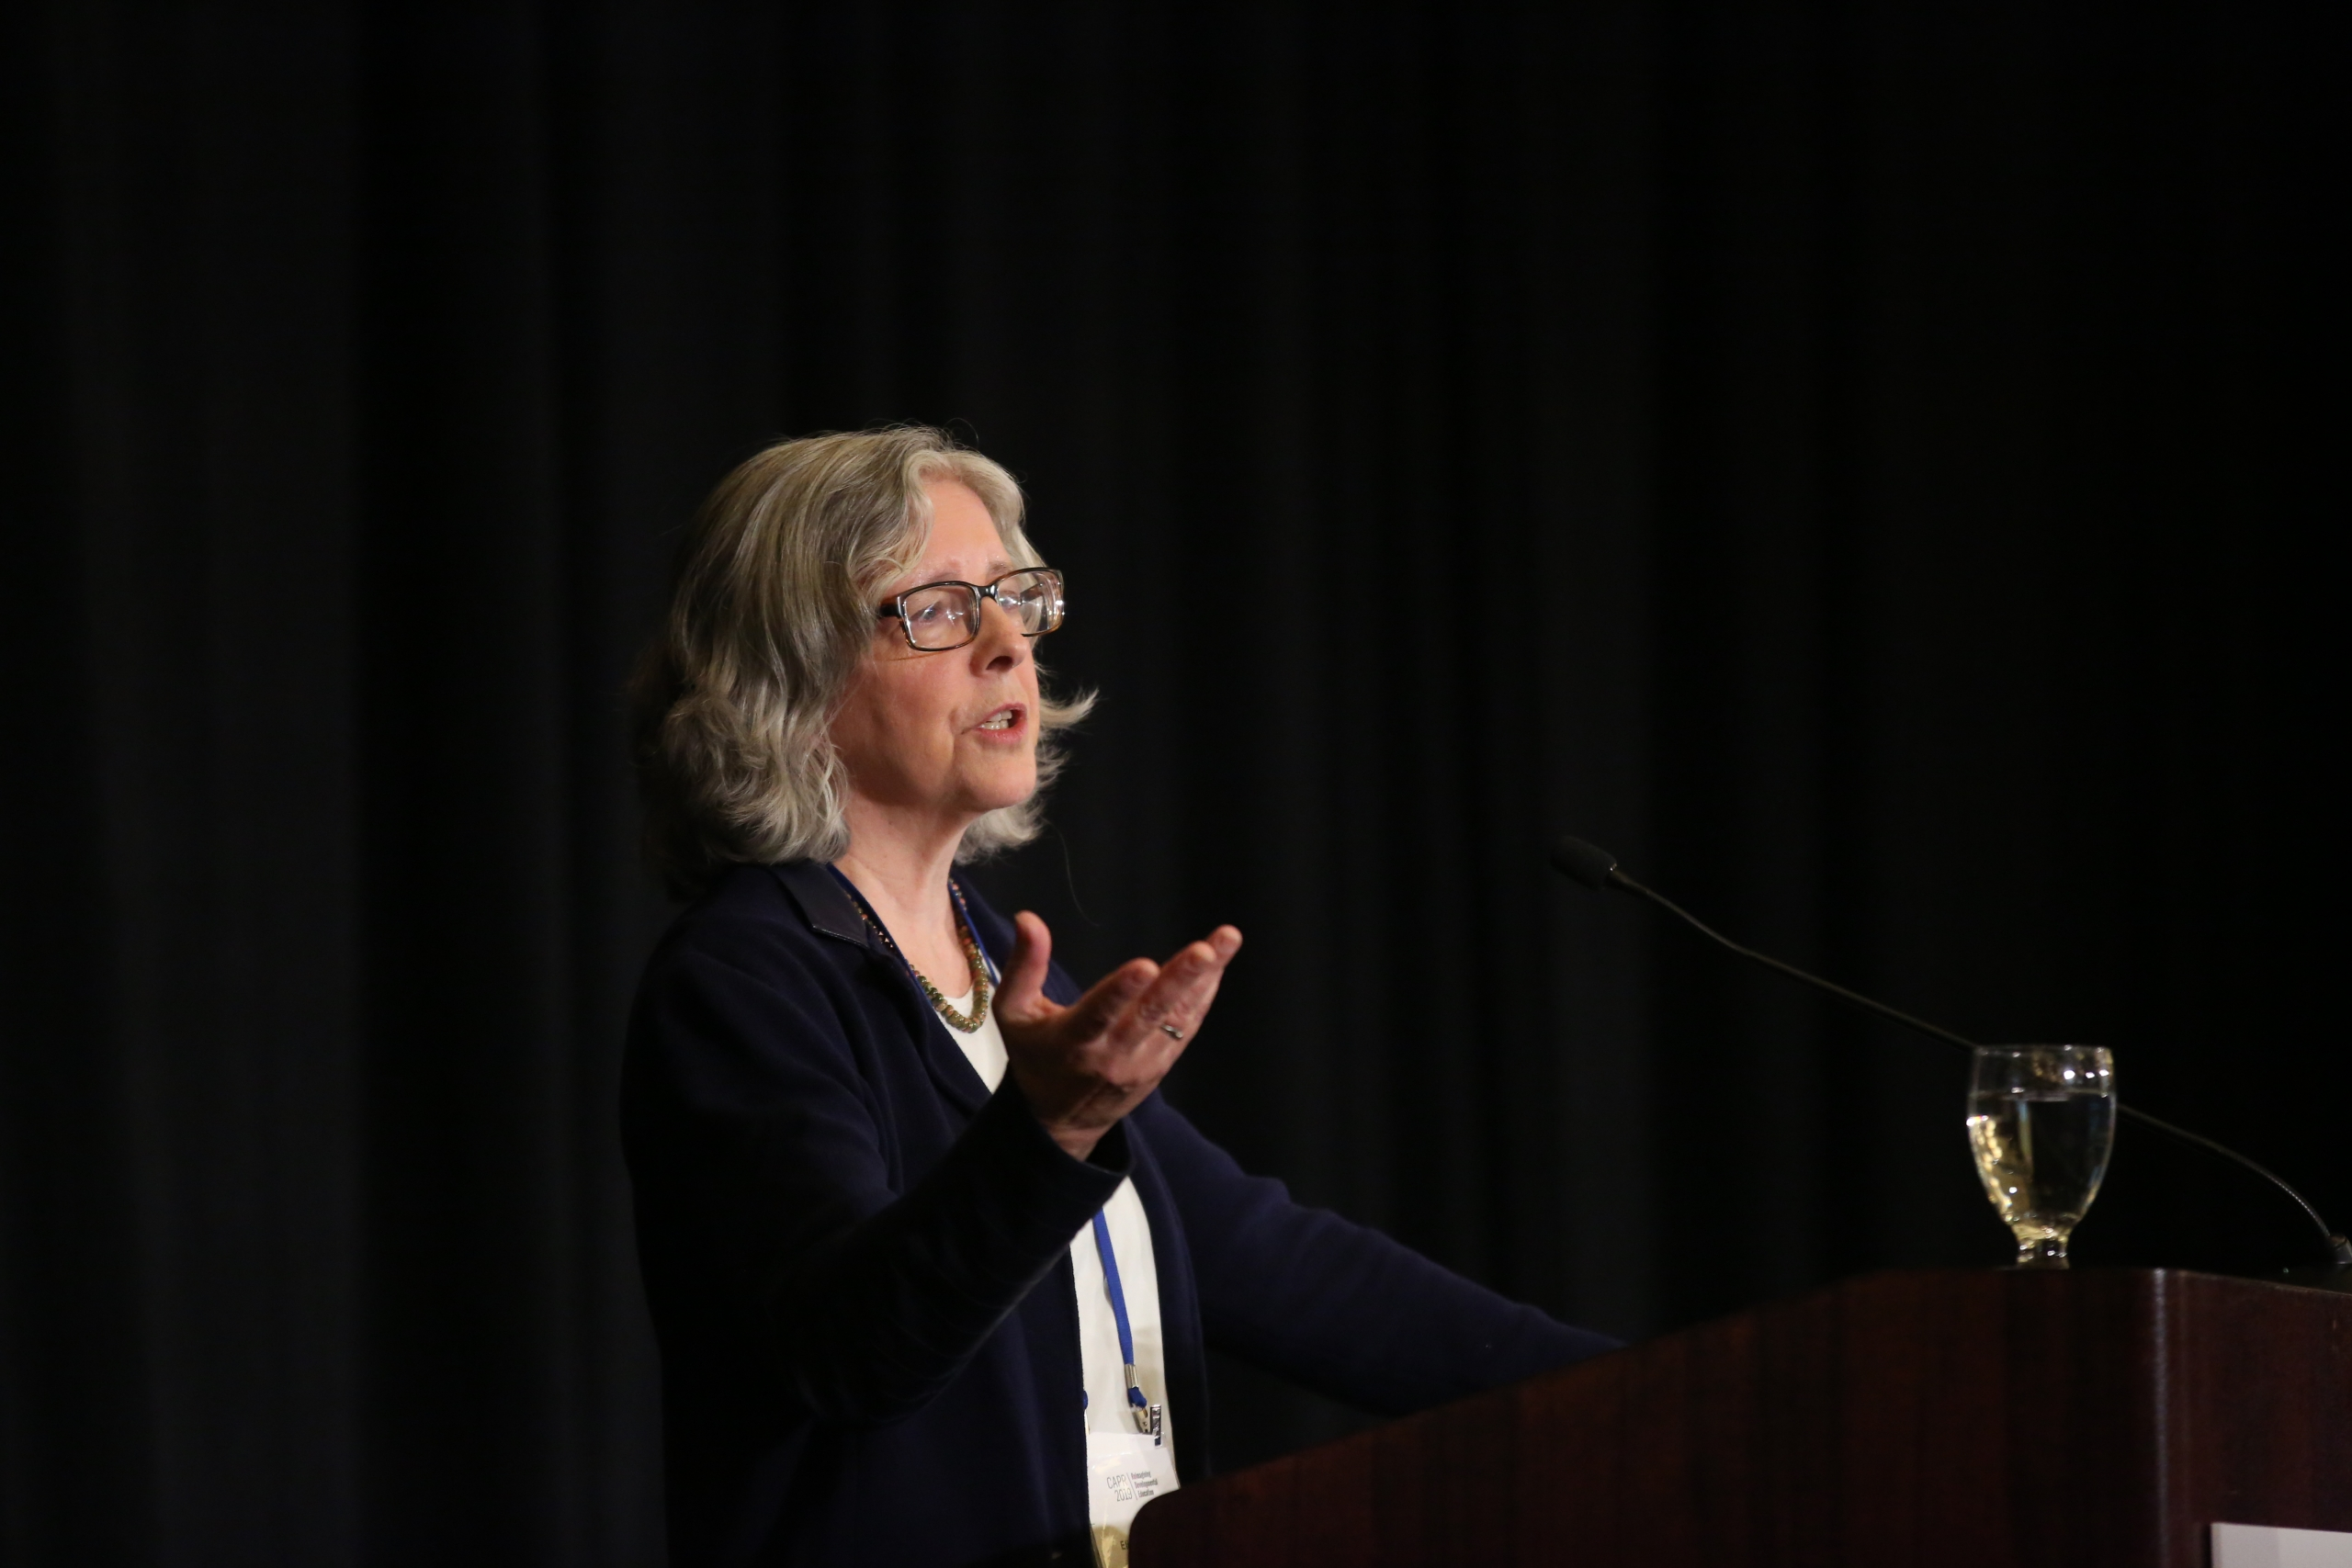 Elisabeth Barnett presents during a plenary session